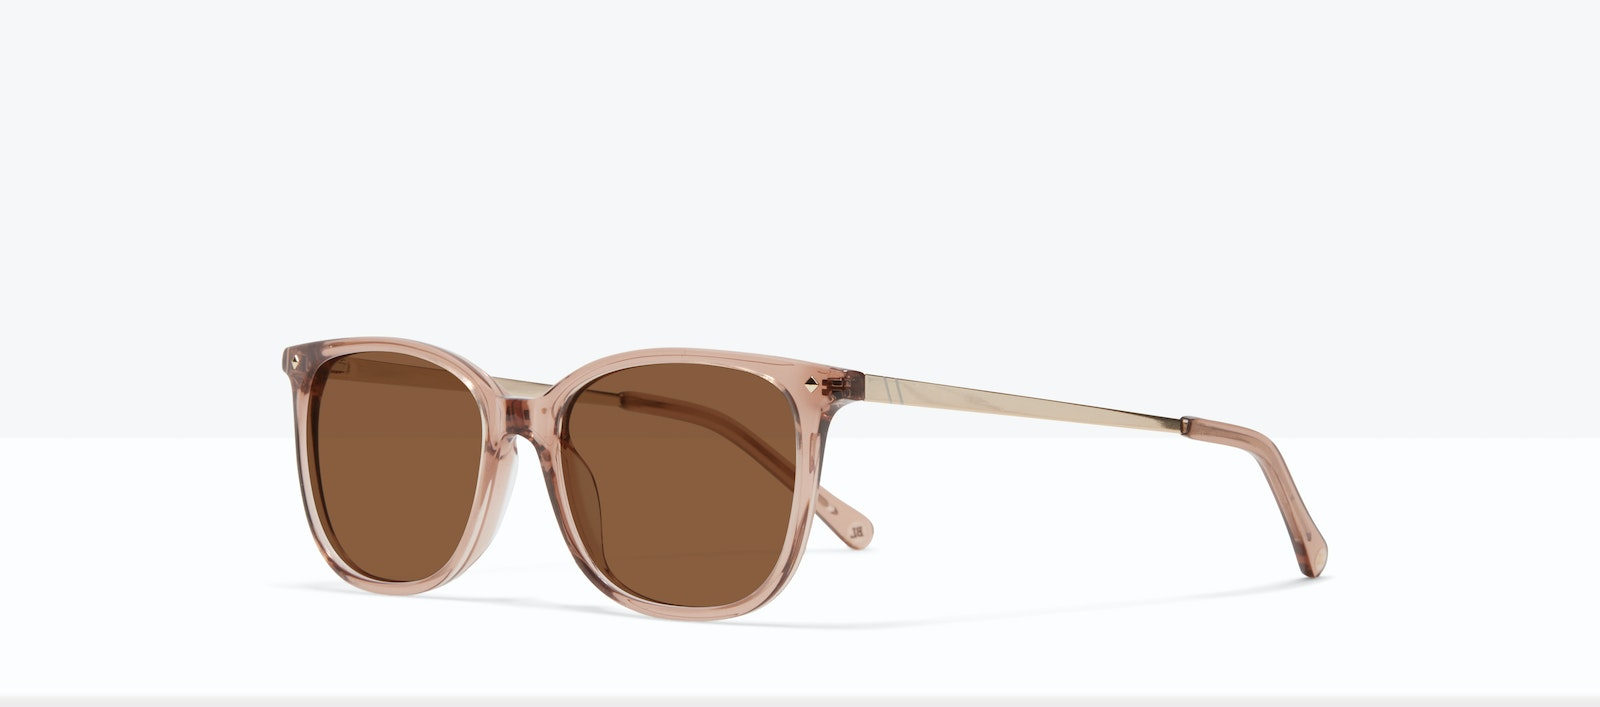 Affordable Fashion Glasses Rectangle Square Sunglasses Women Refine S Rose Tilt